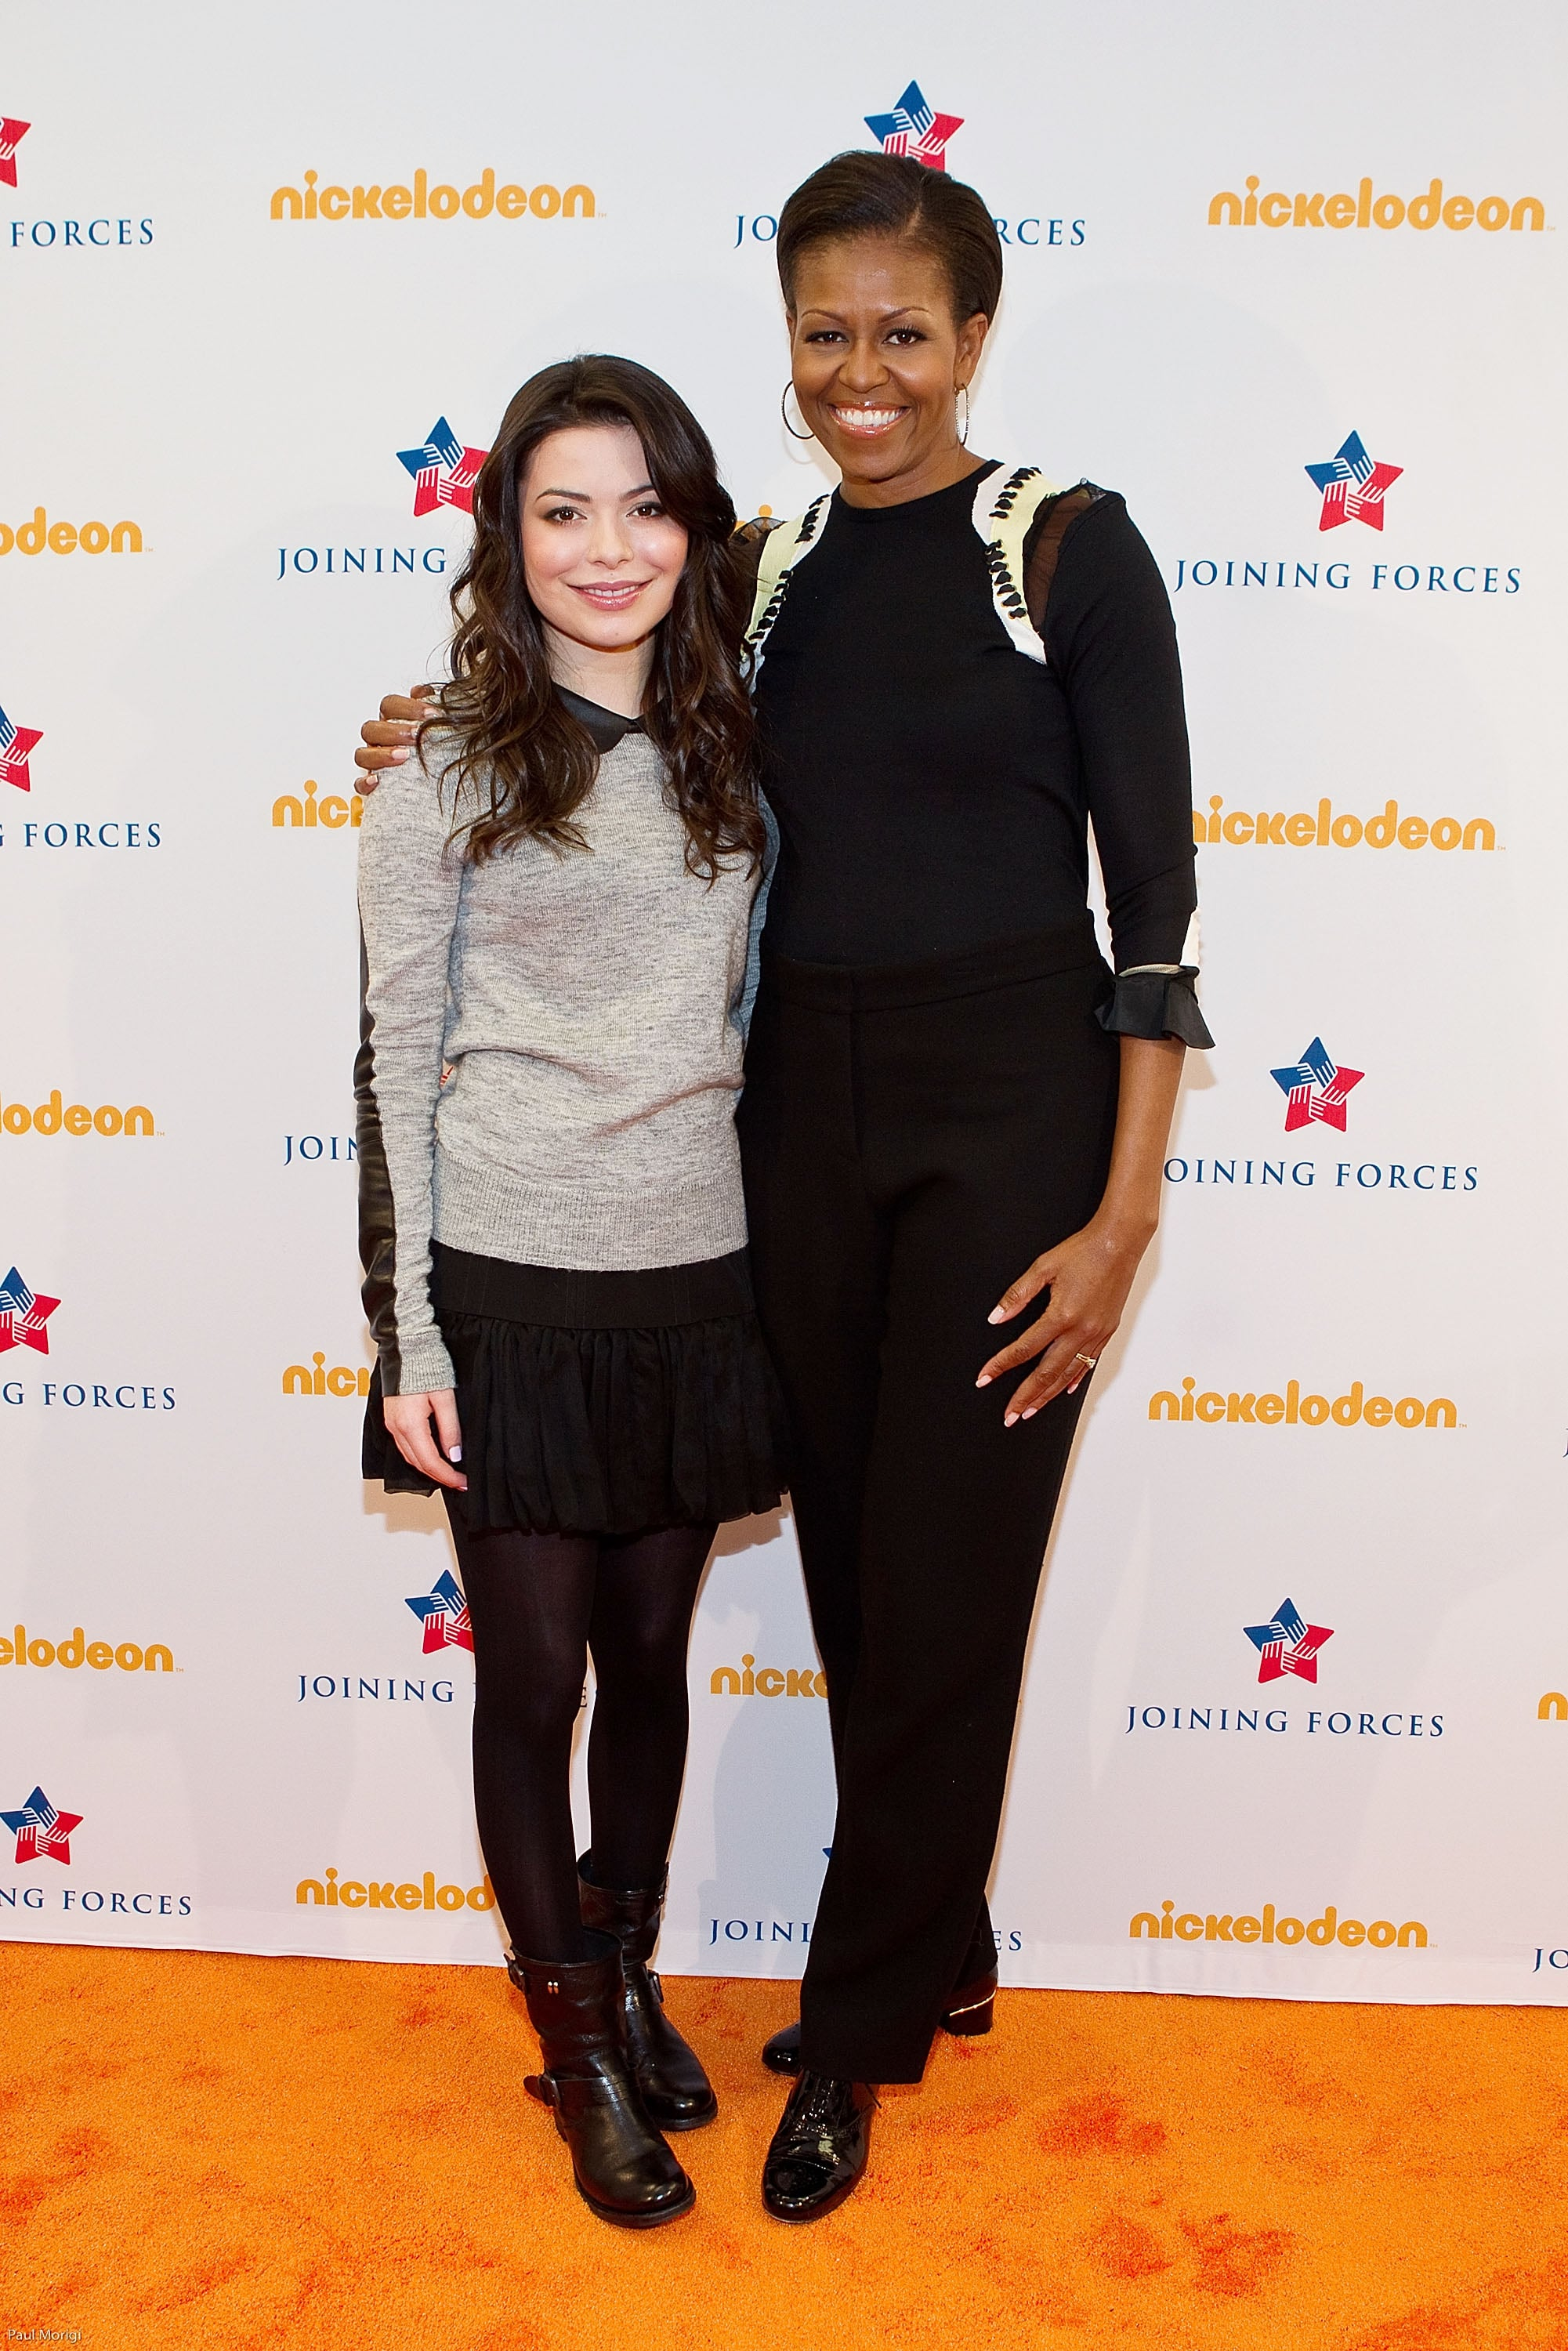 Michelle attended a screening of Nickelodeon's iCarly in a sleek black outfit. We especially loved the details on the shoulders and her shiny black brogues.